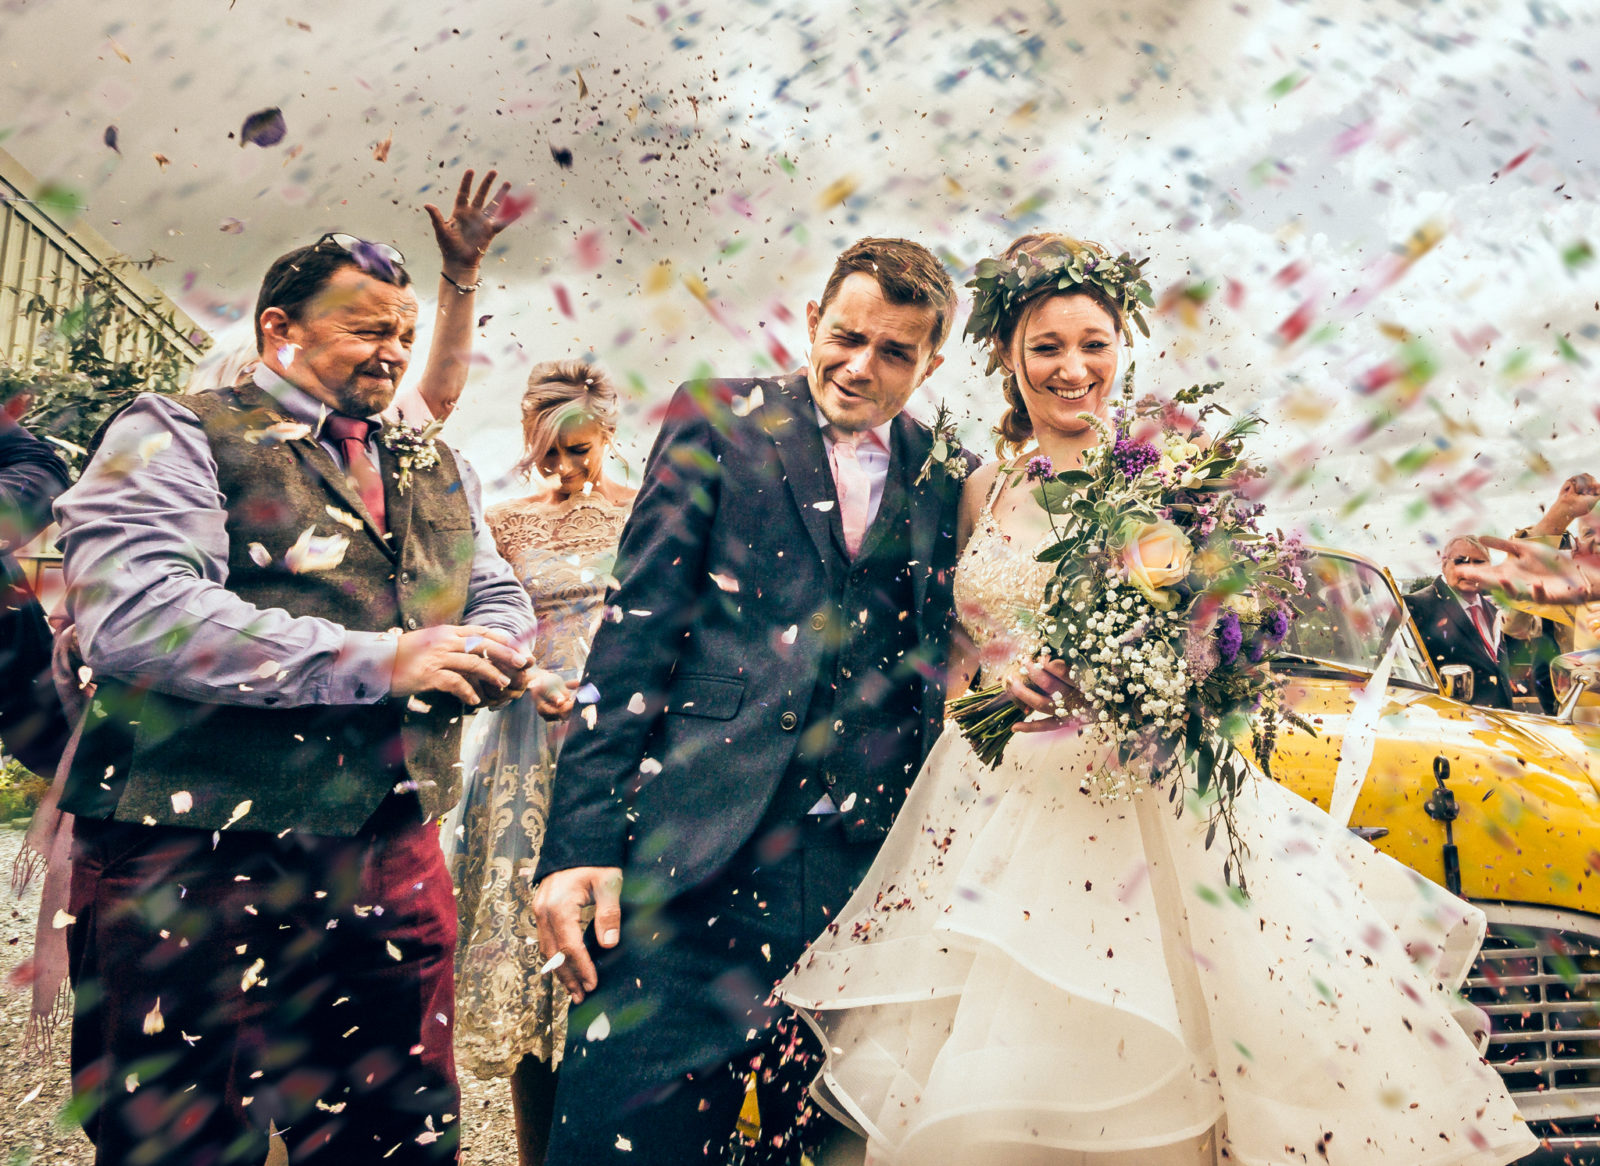 How to make your wedding go smoothly